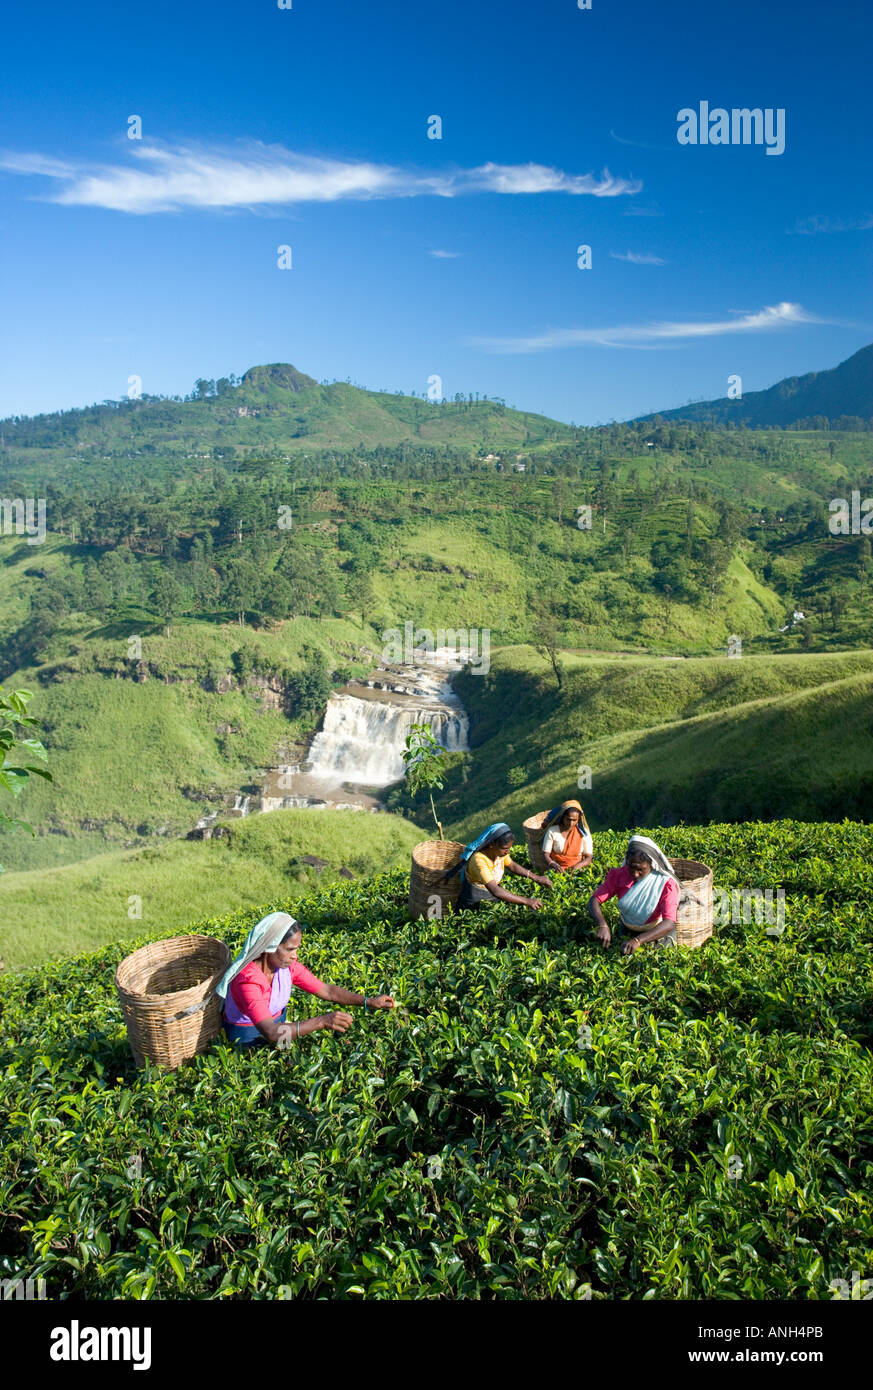 Tea Plantation, Talawakele, Nuwara Eliya, Hill Country, Sri Lanka Stock Photo